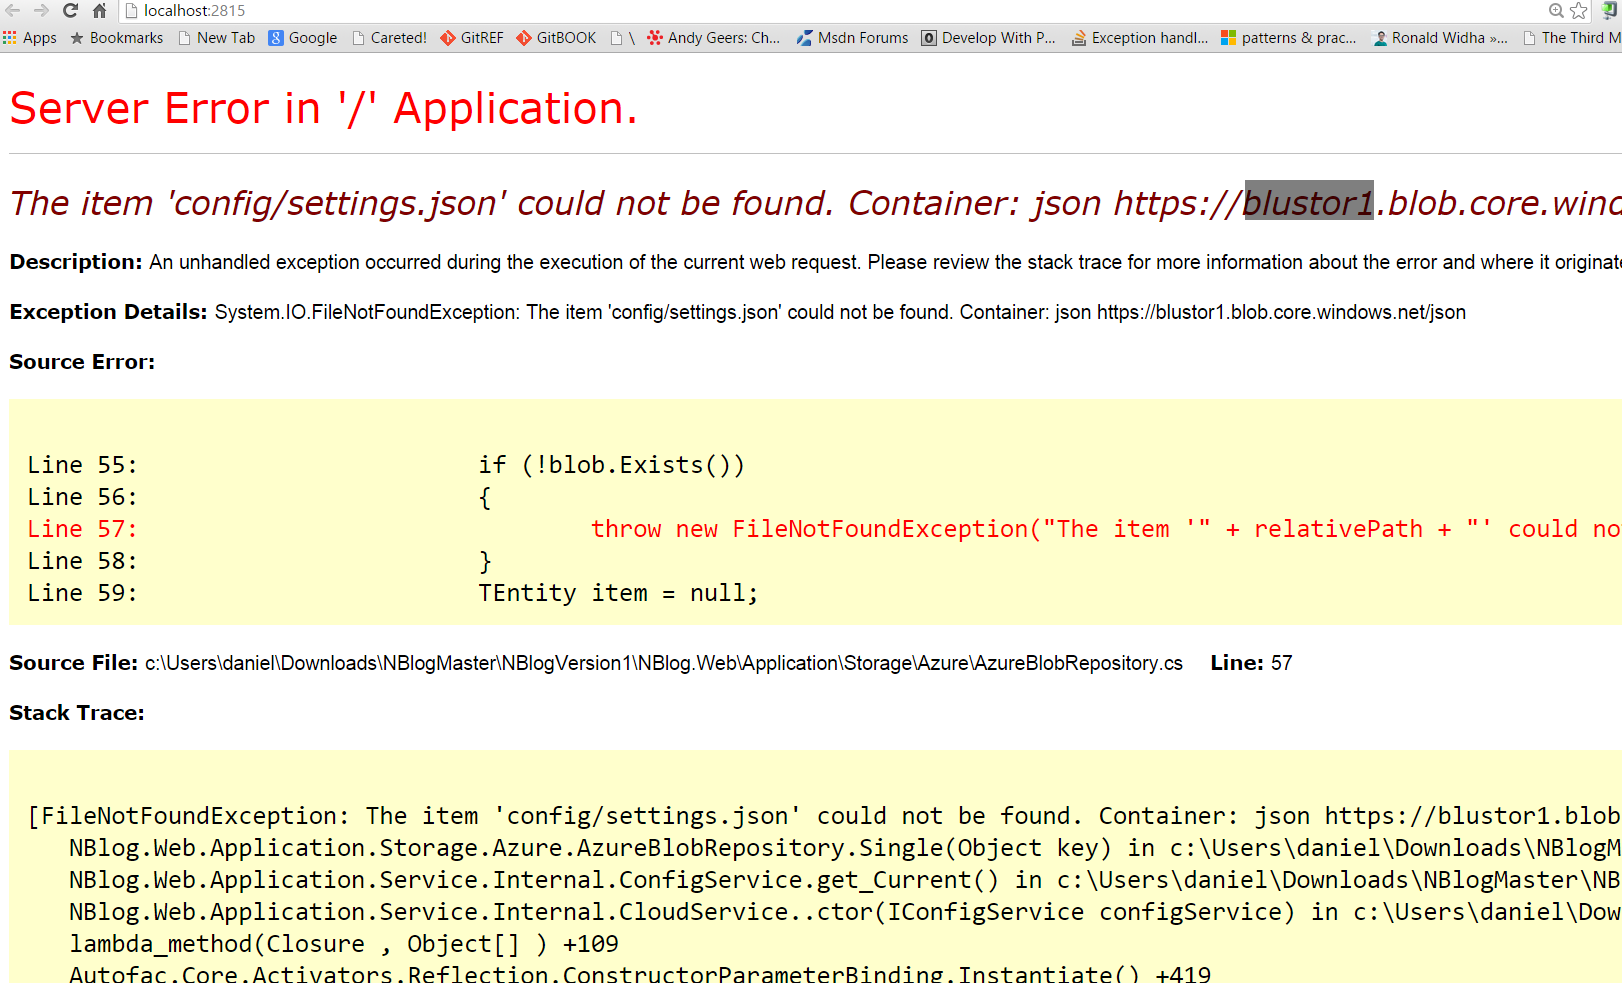 Azure-blob NBLOG config/settings json could not be found